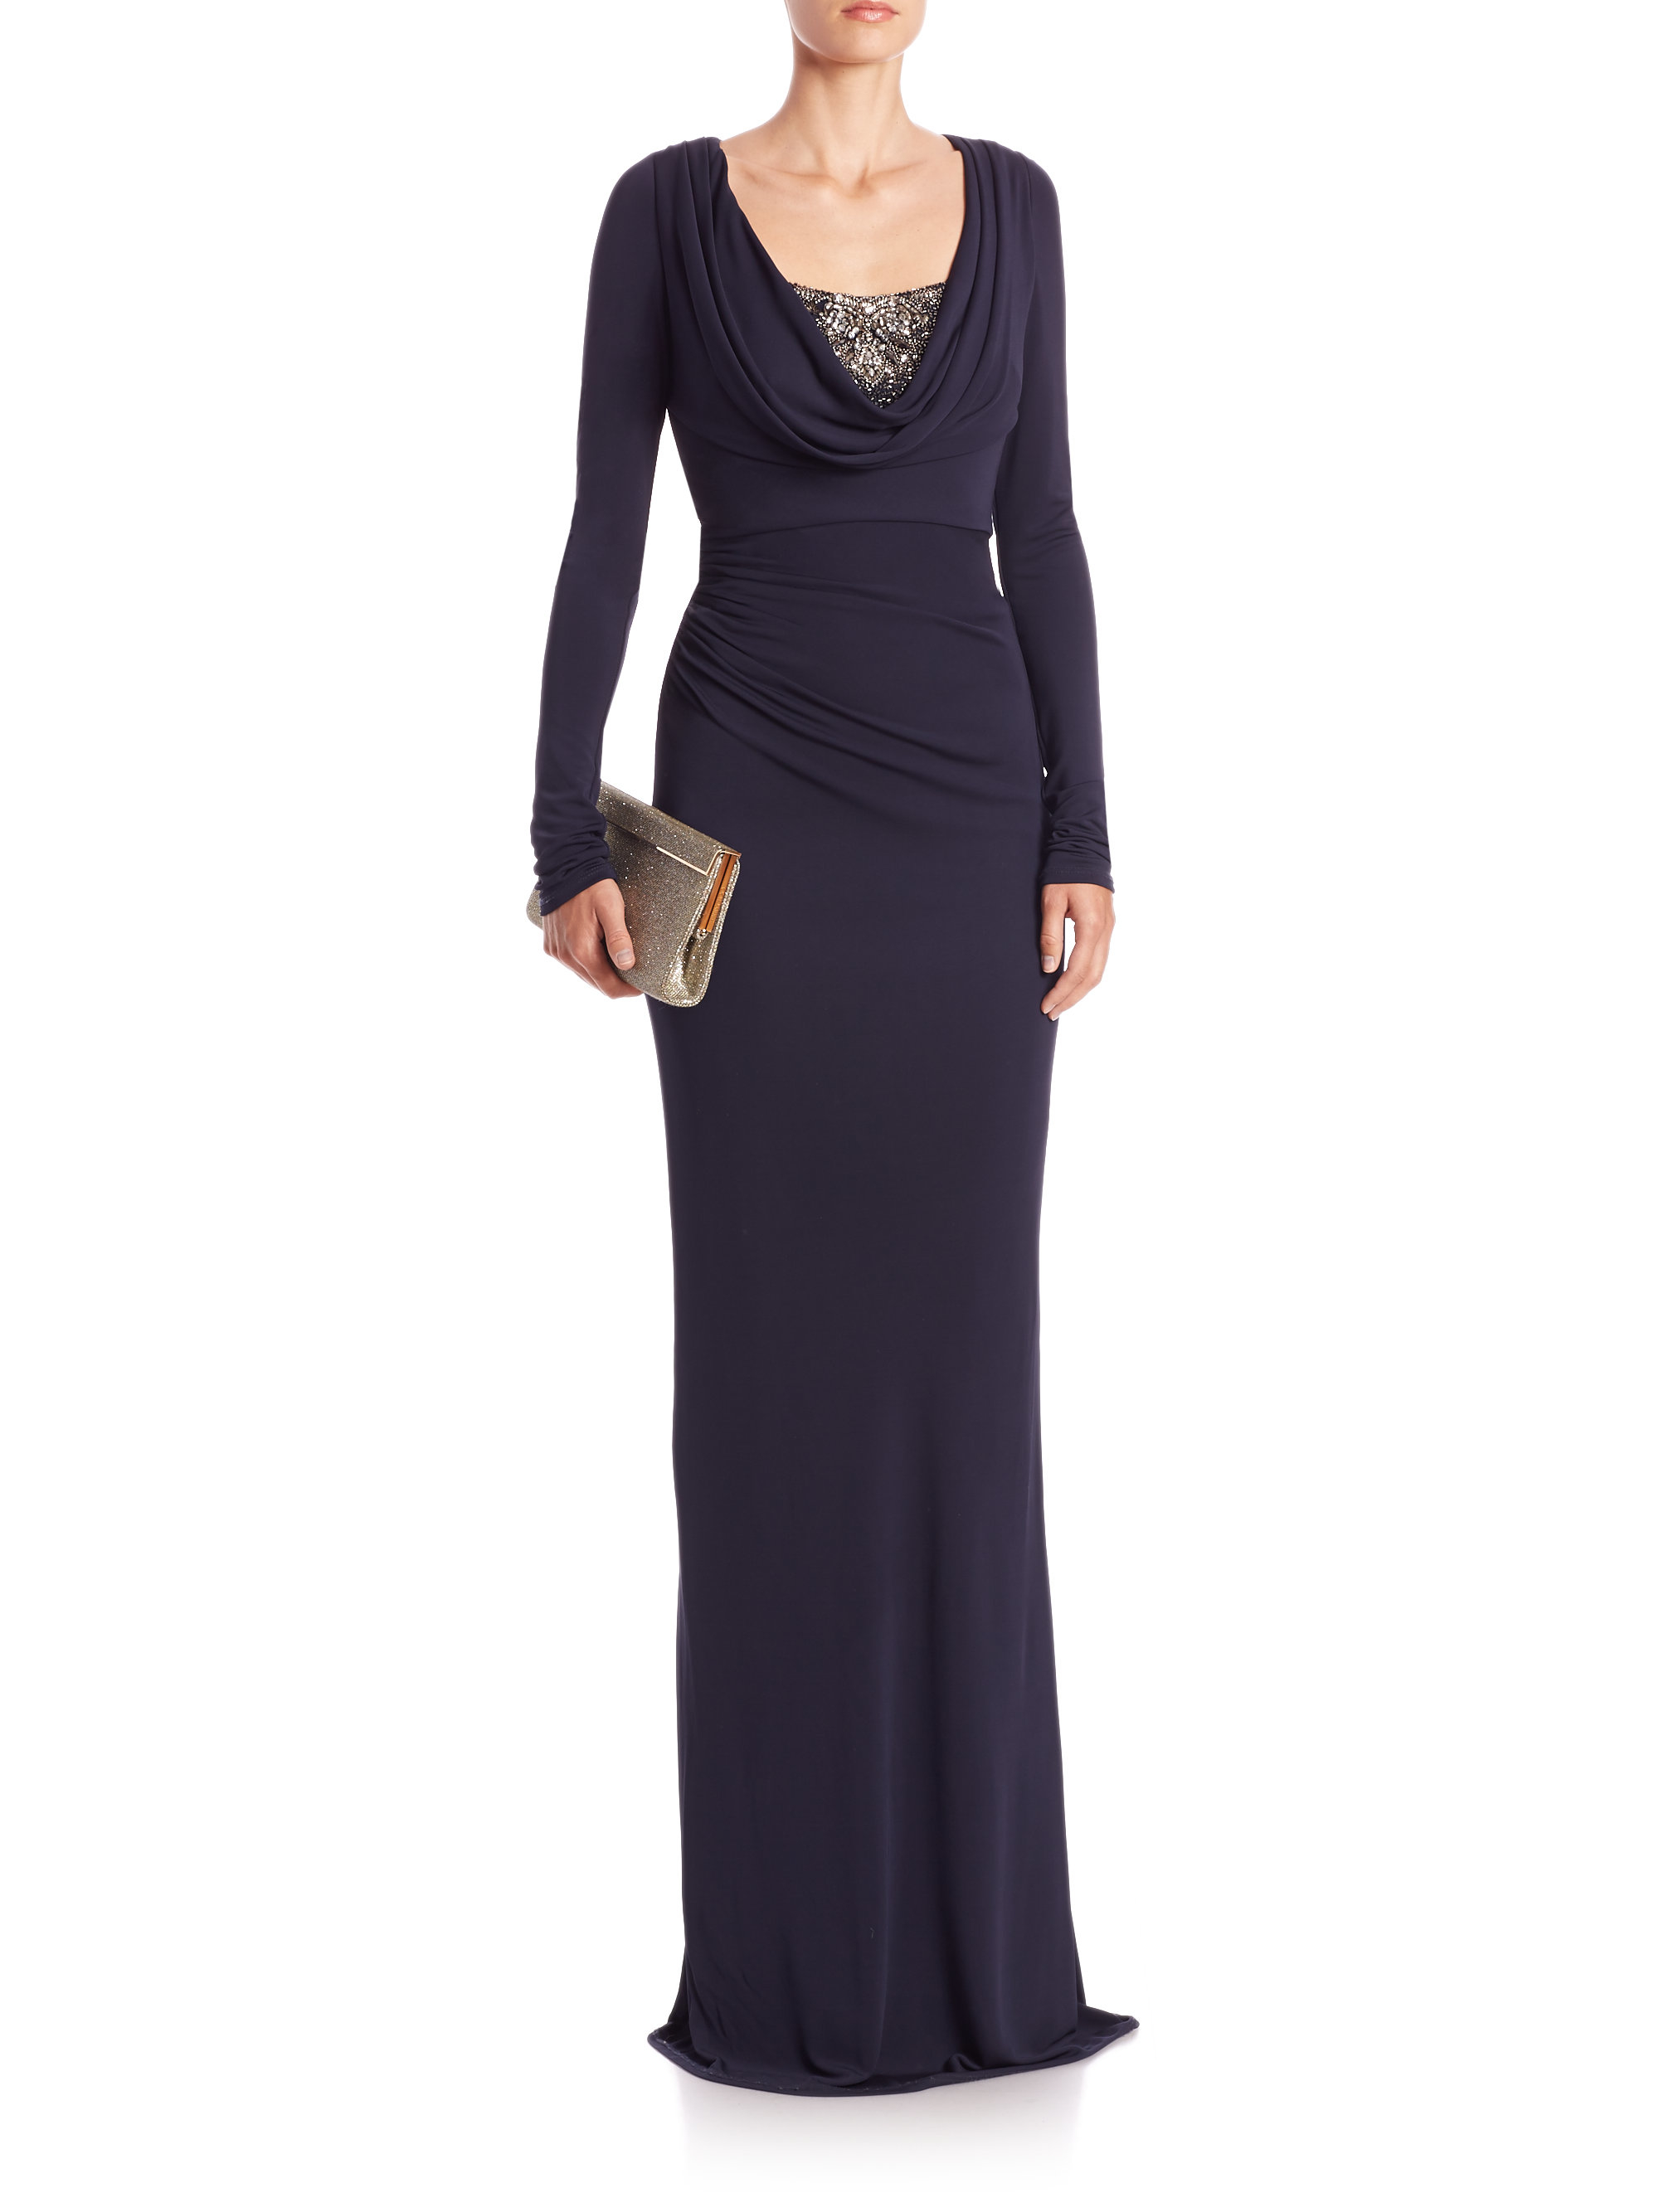 Lyst - David Meister Cowl-Neck Jersey Gown in Blue